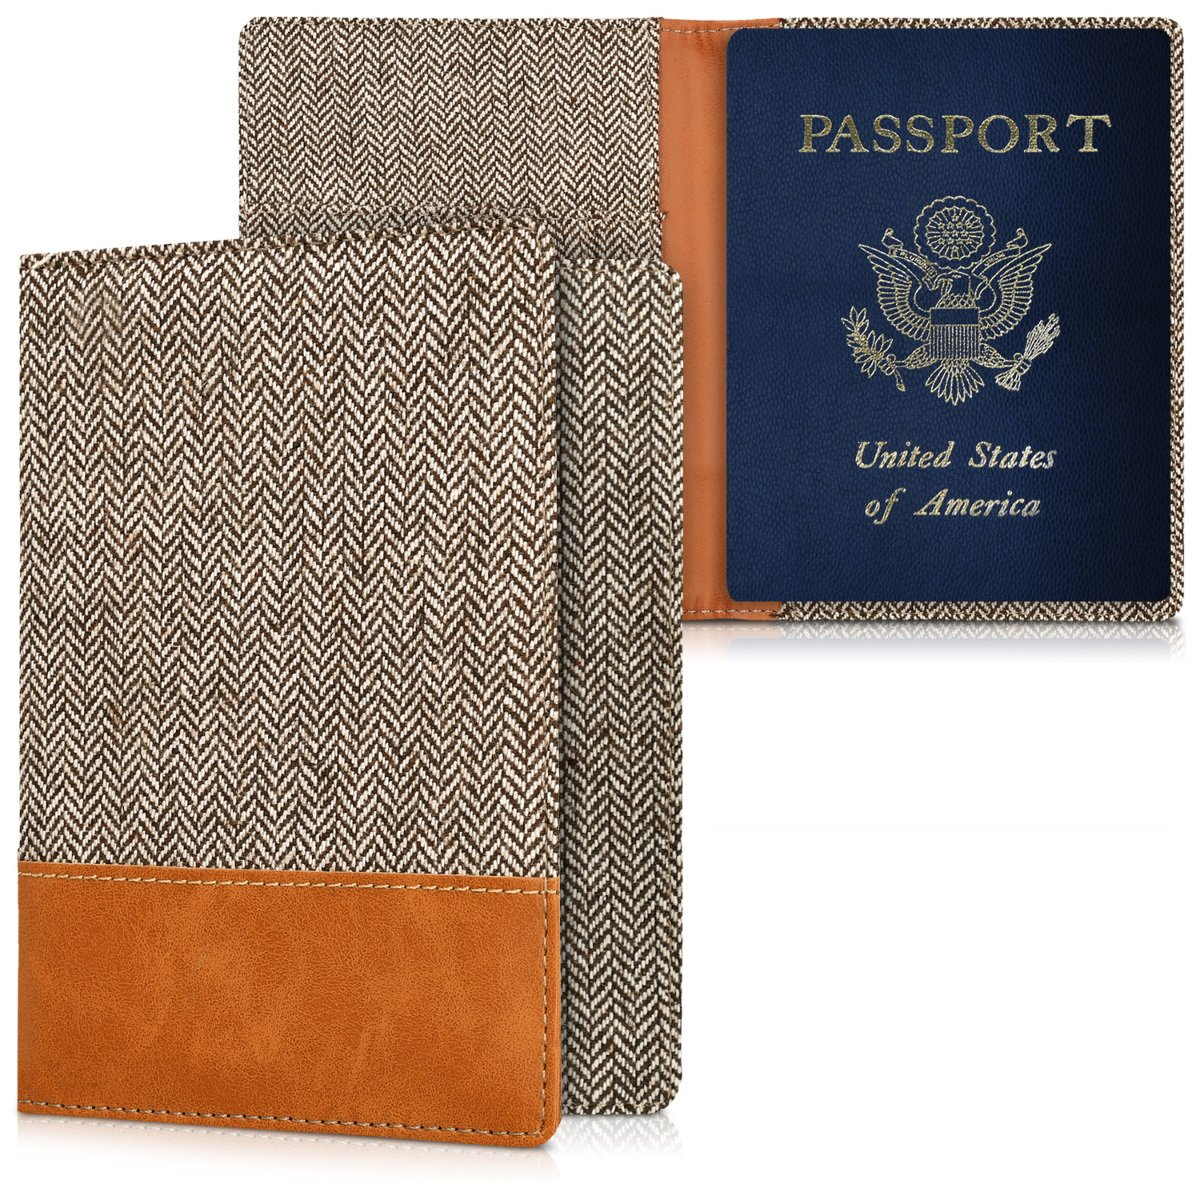 c2604de41b19 kwmobile Passport Holder with Card Slots - PU Leather Passport Cover  Protective Case - Travel Wallet for Men & Women - Dark Grey/Brown